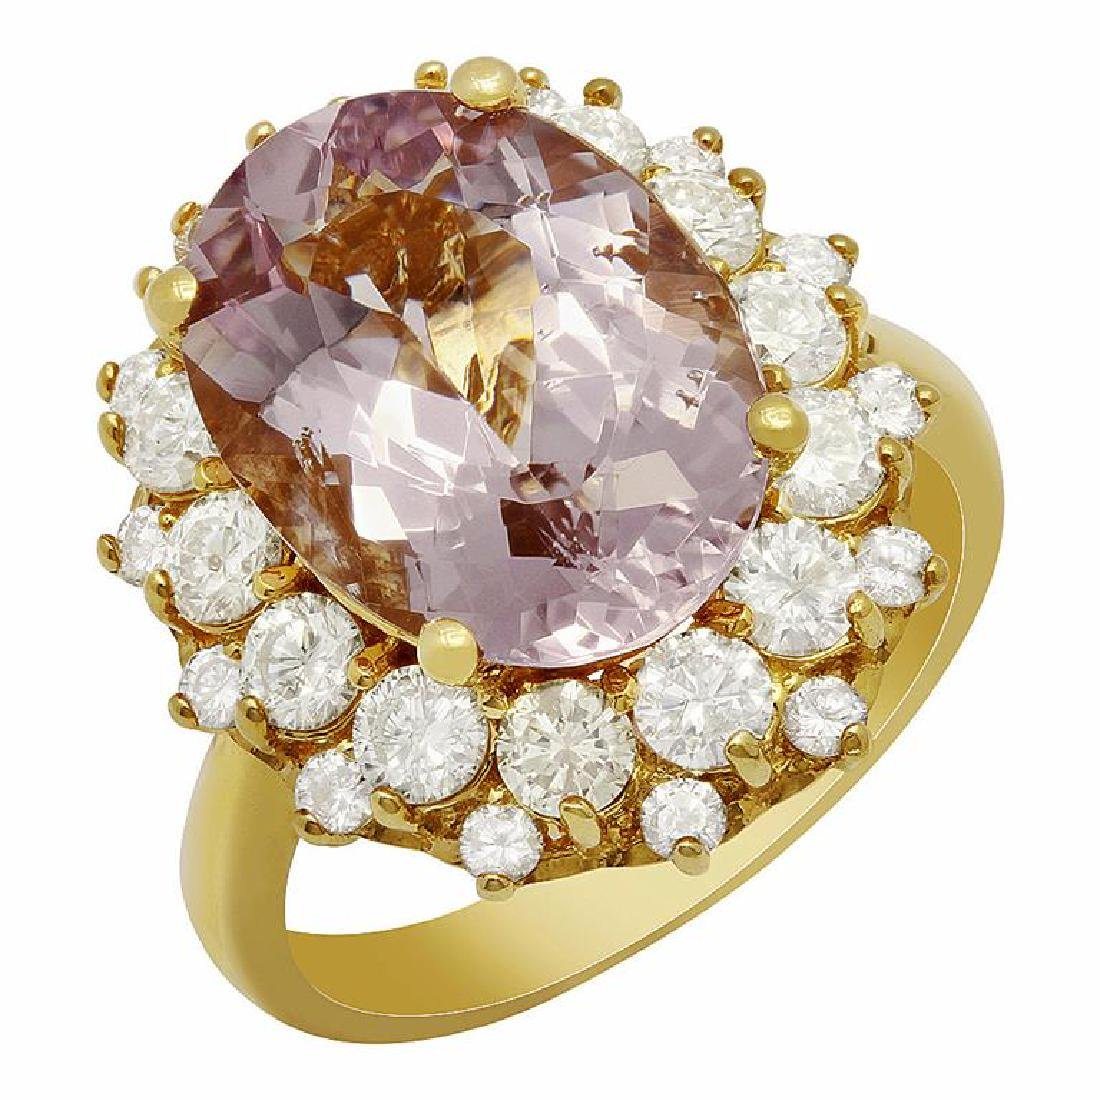 14k Yellow Gold 5.94ct Kunzite 1.72ct Diamond Ring